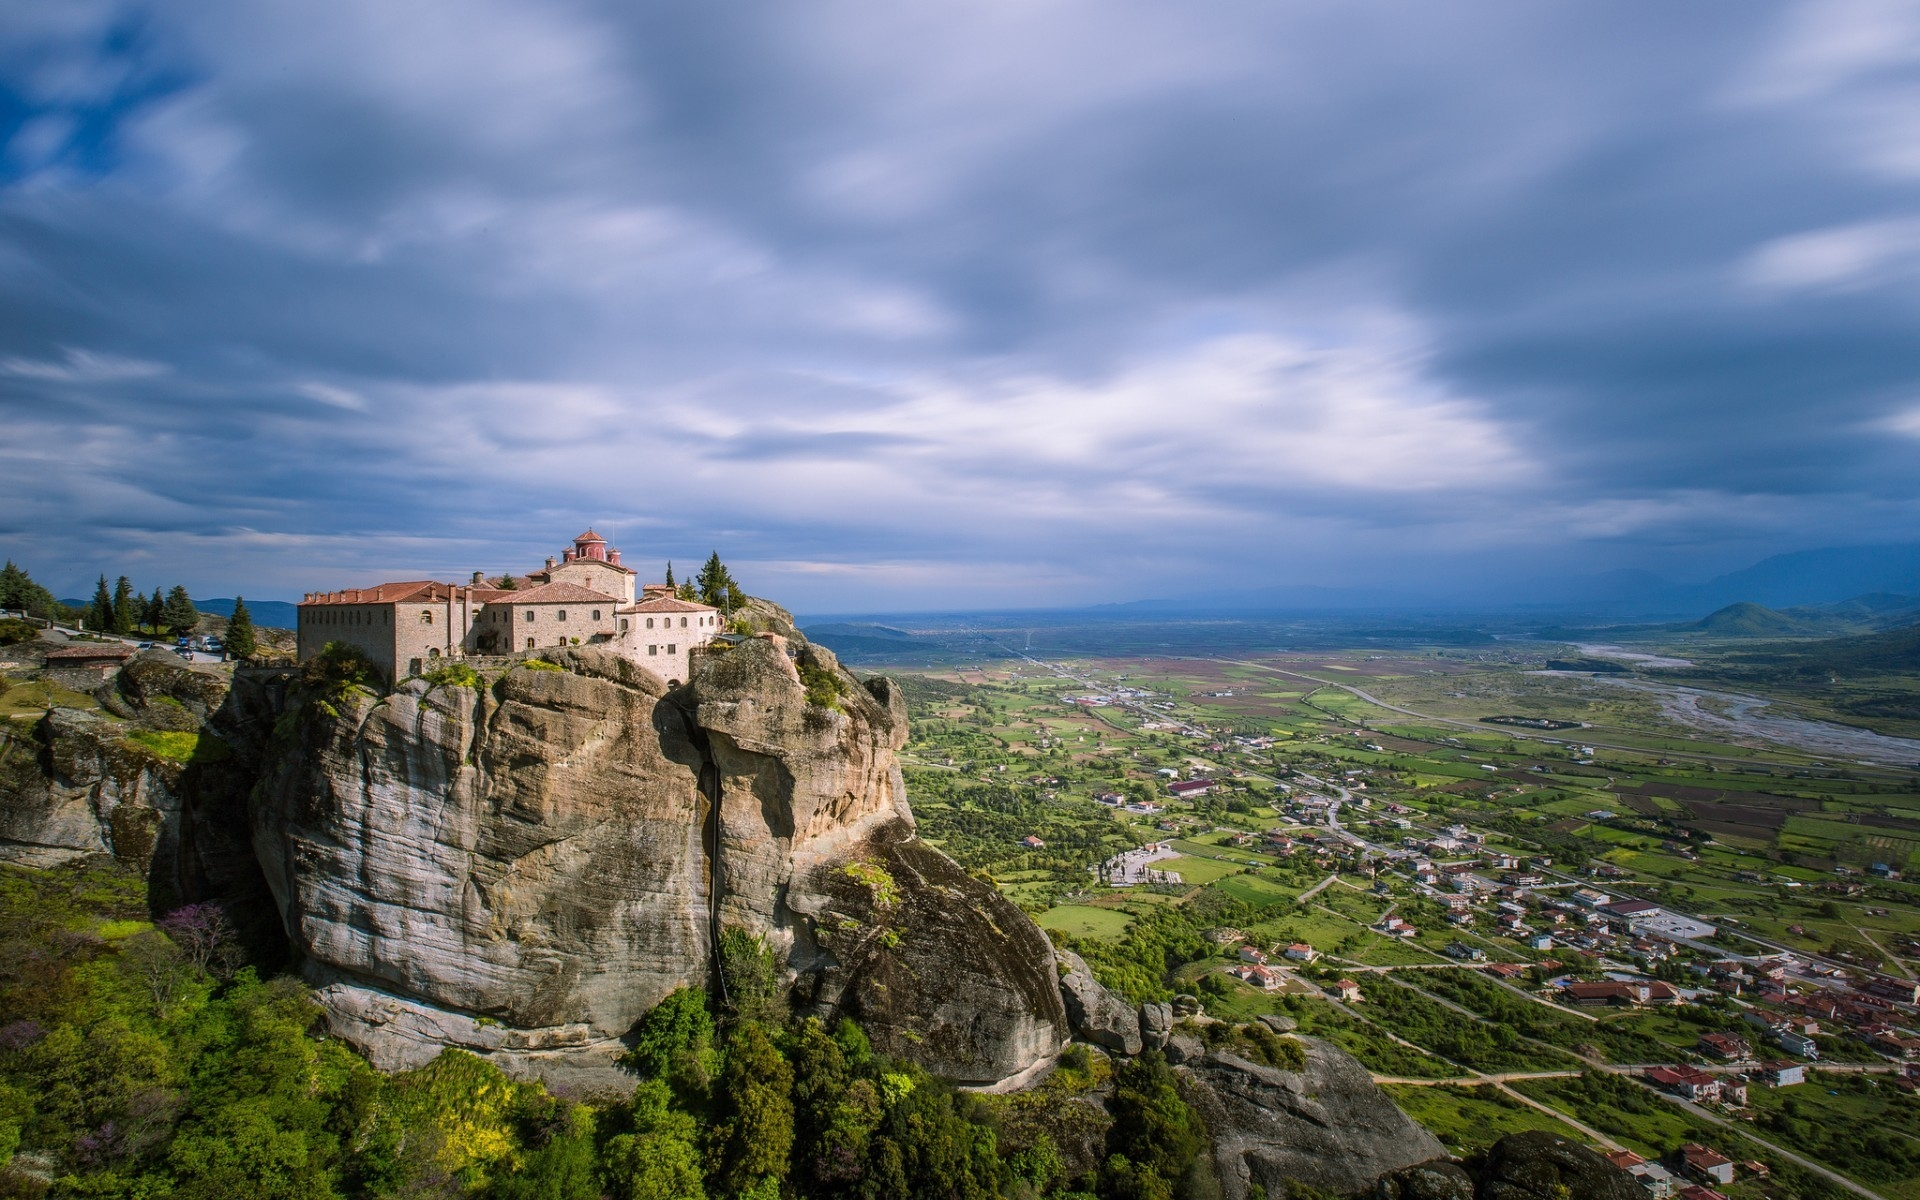 Meteora Greece Landscape 1920 X 1200 Widescreen Wallpaper